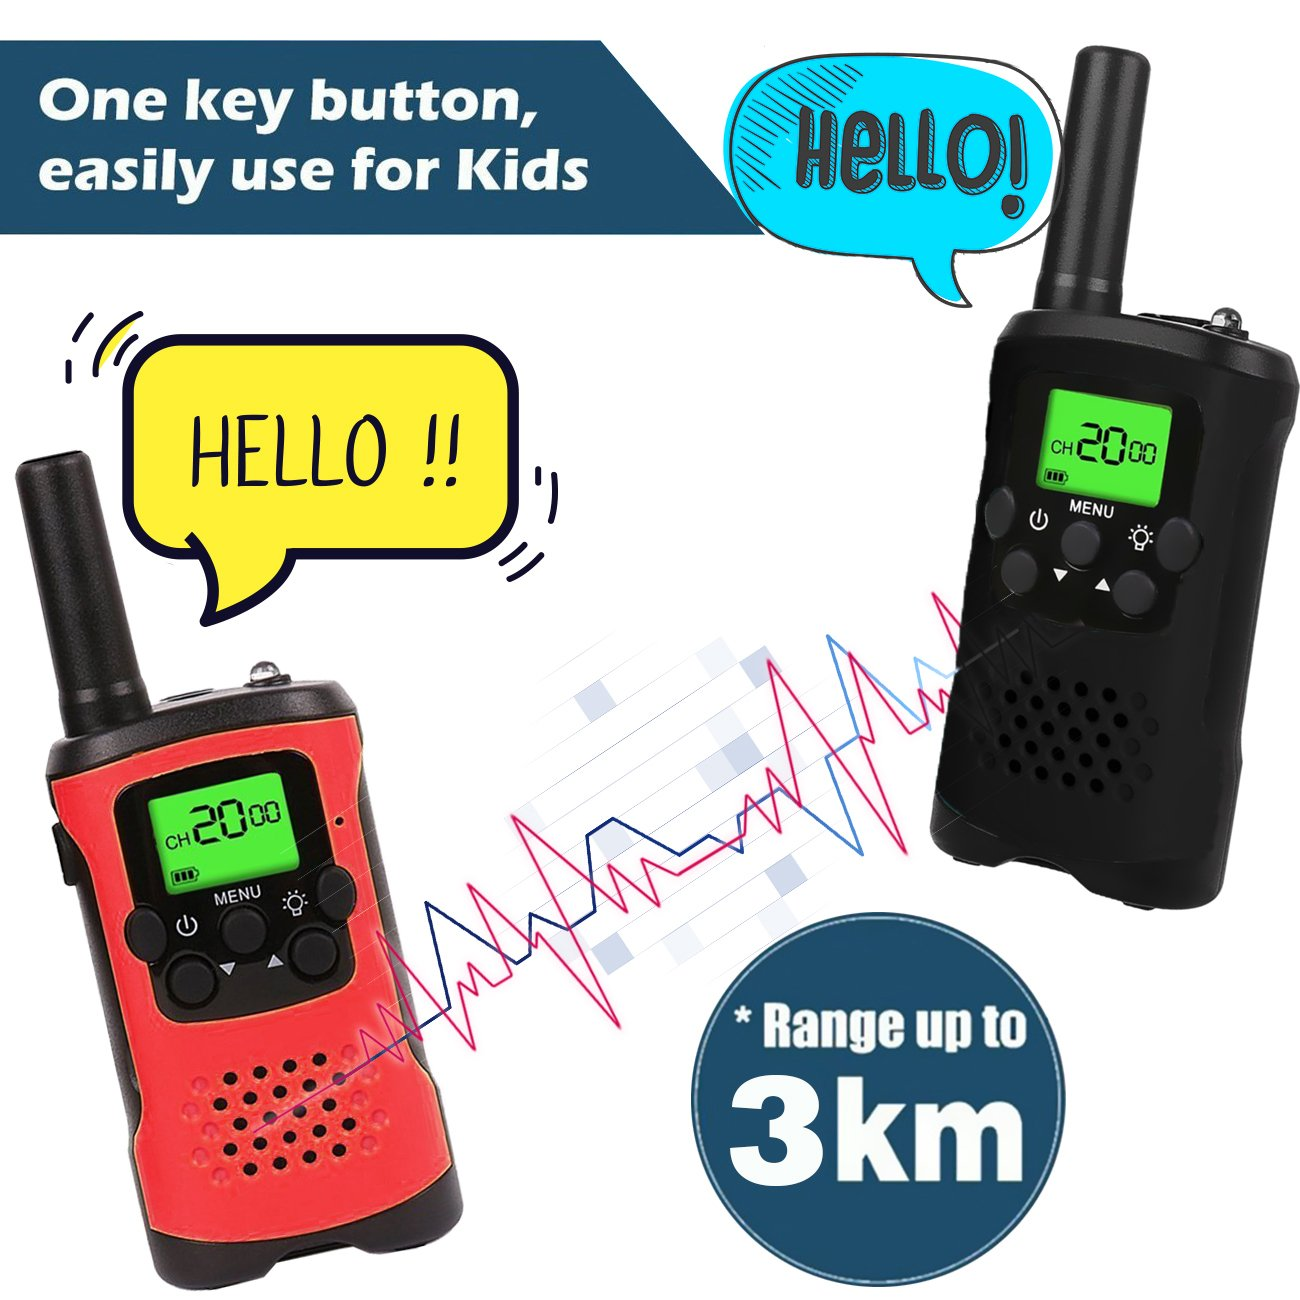 AMENON 2 Pack Walkie Talkies for Kids 22 Channel 2 Way Radio 3 Miles Long (Up to 5Miles) FRS/GMRS Handheld Mini Radio Toy for Boys Girls Outdoor Camping Hiking Birthday Christmas by AMENON (Image #4)